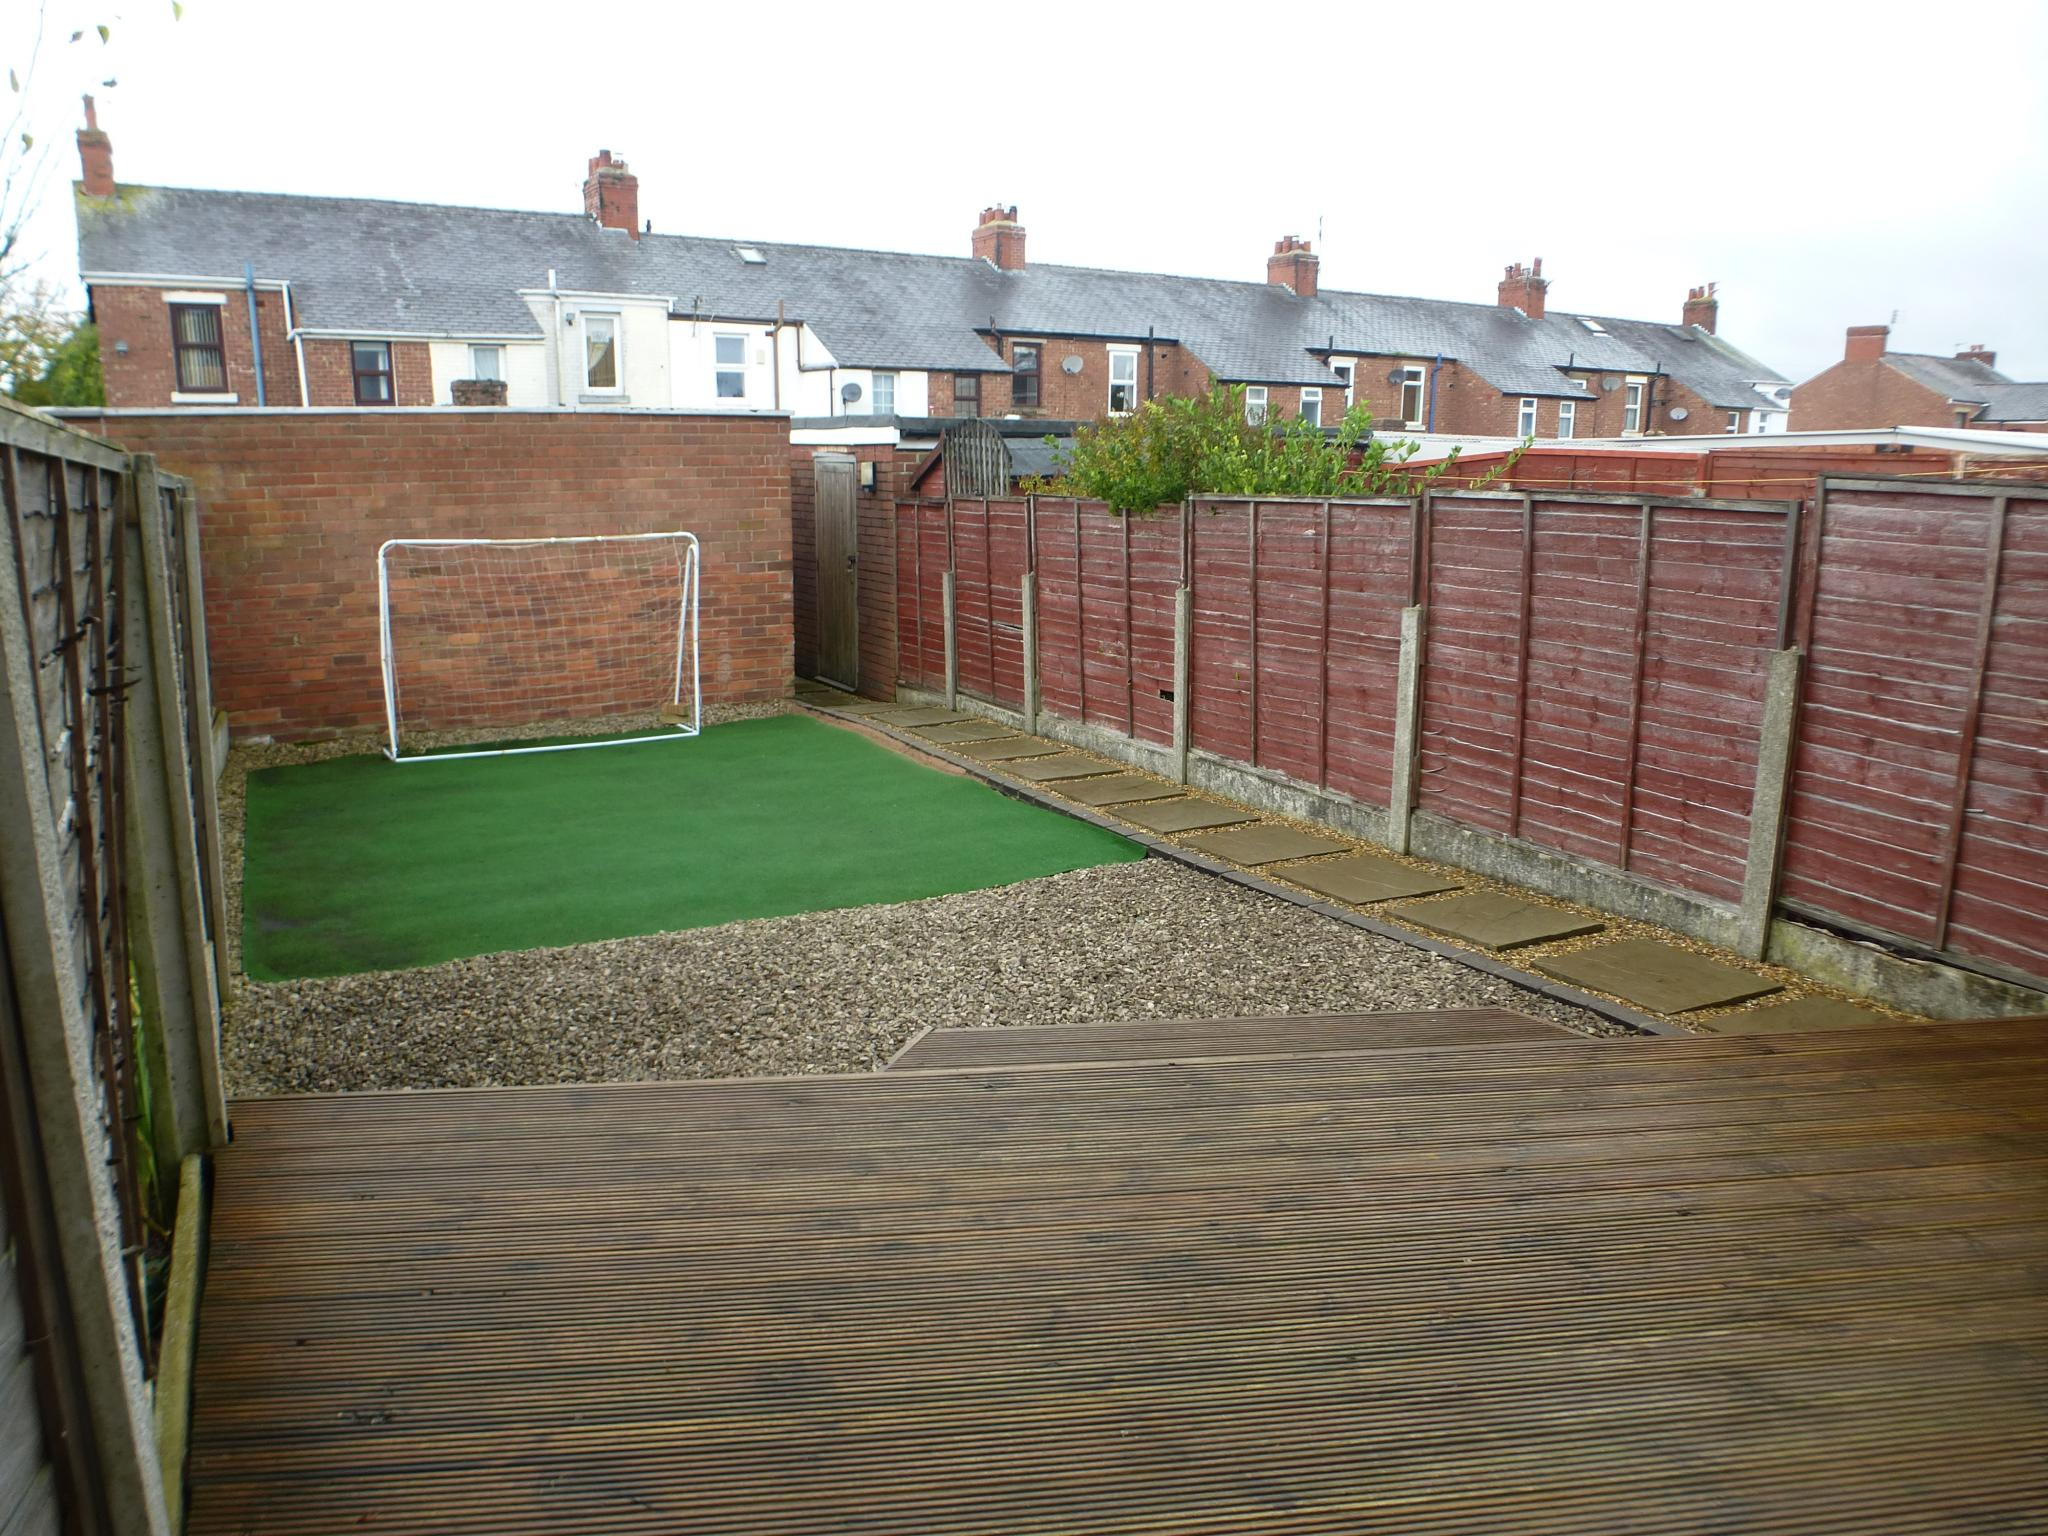 3 Bedroom Mid Terraced House For Sale - Image 18